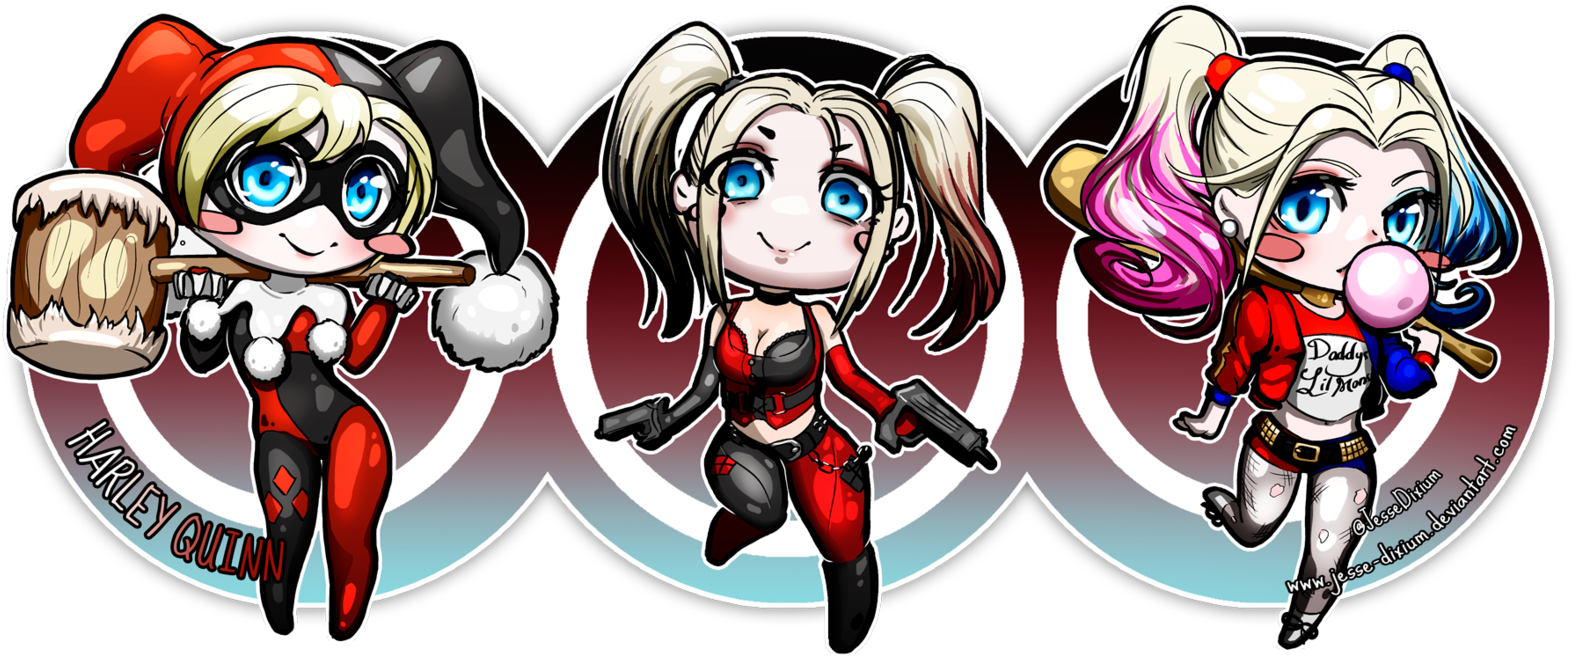 Harley Quinn Chibi Png Harley Quinn Wallpapers Search Result Cliparts For Joker Harley Quinn Evolution 350305 Vippng